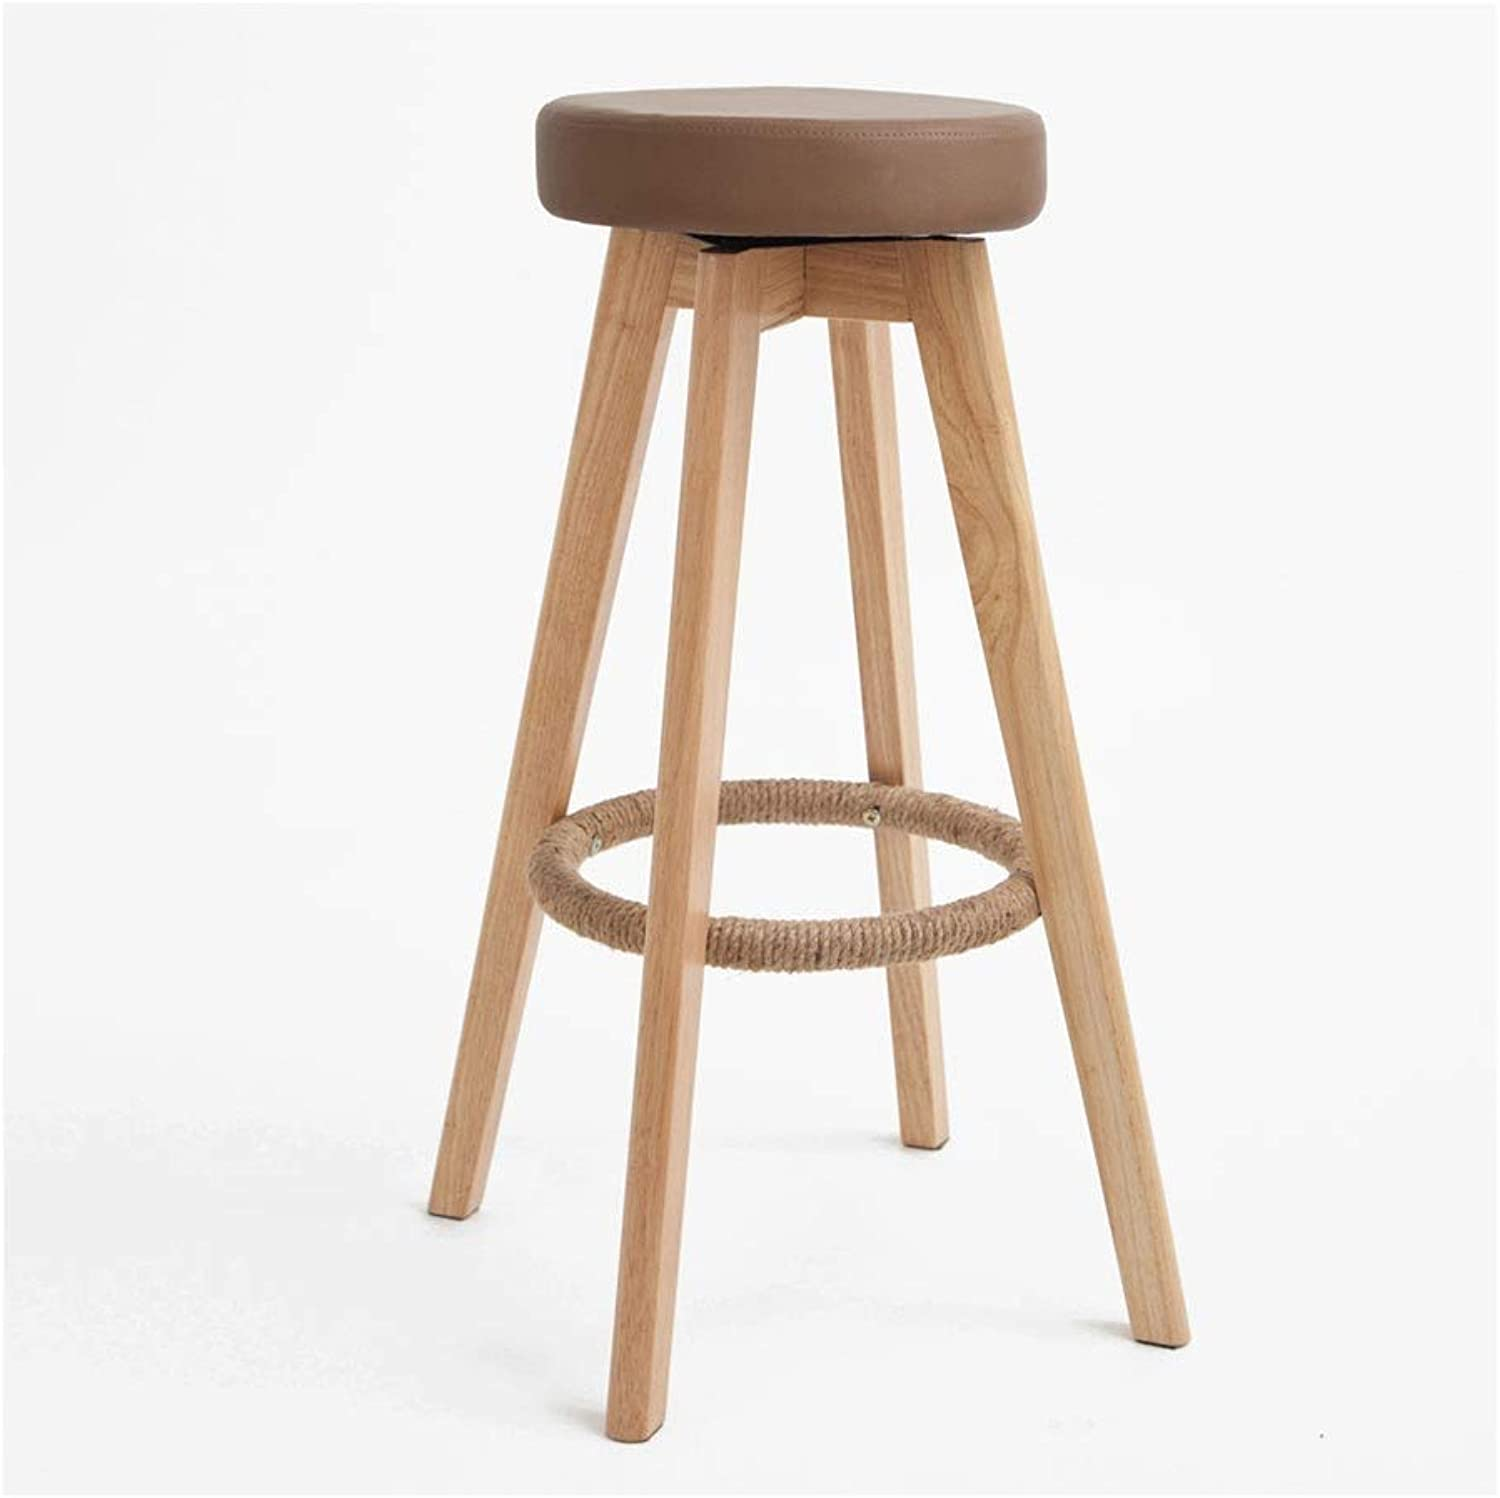 Home Simple Bar Stool, Solid Wood High Resilience Sponge Filled Bar Stool, Natural Wood Grain High Chair, 5 colors,PU Leather Easy to Clean-48cm74cm (color   Brown)